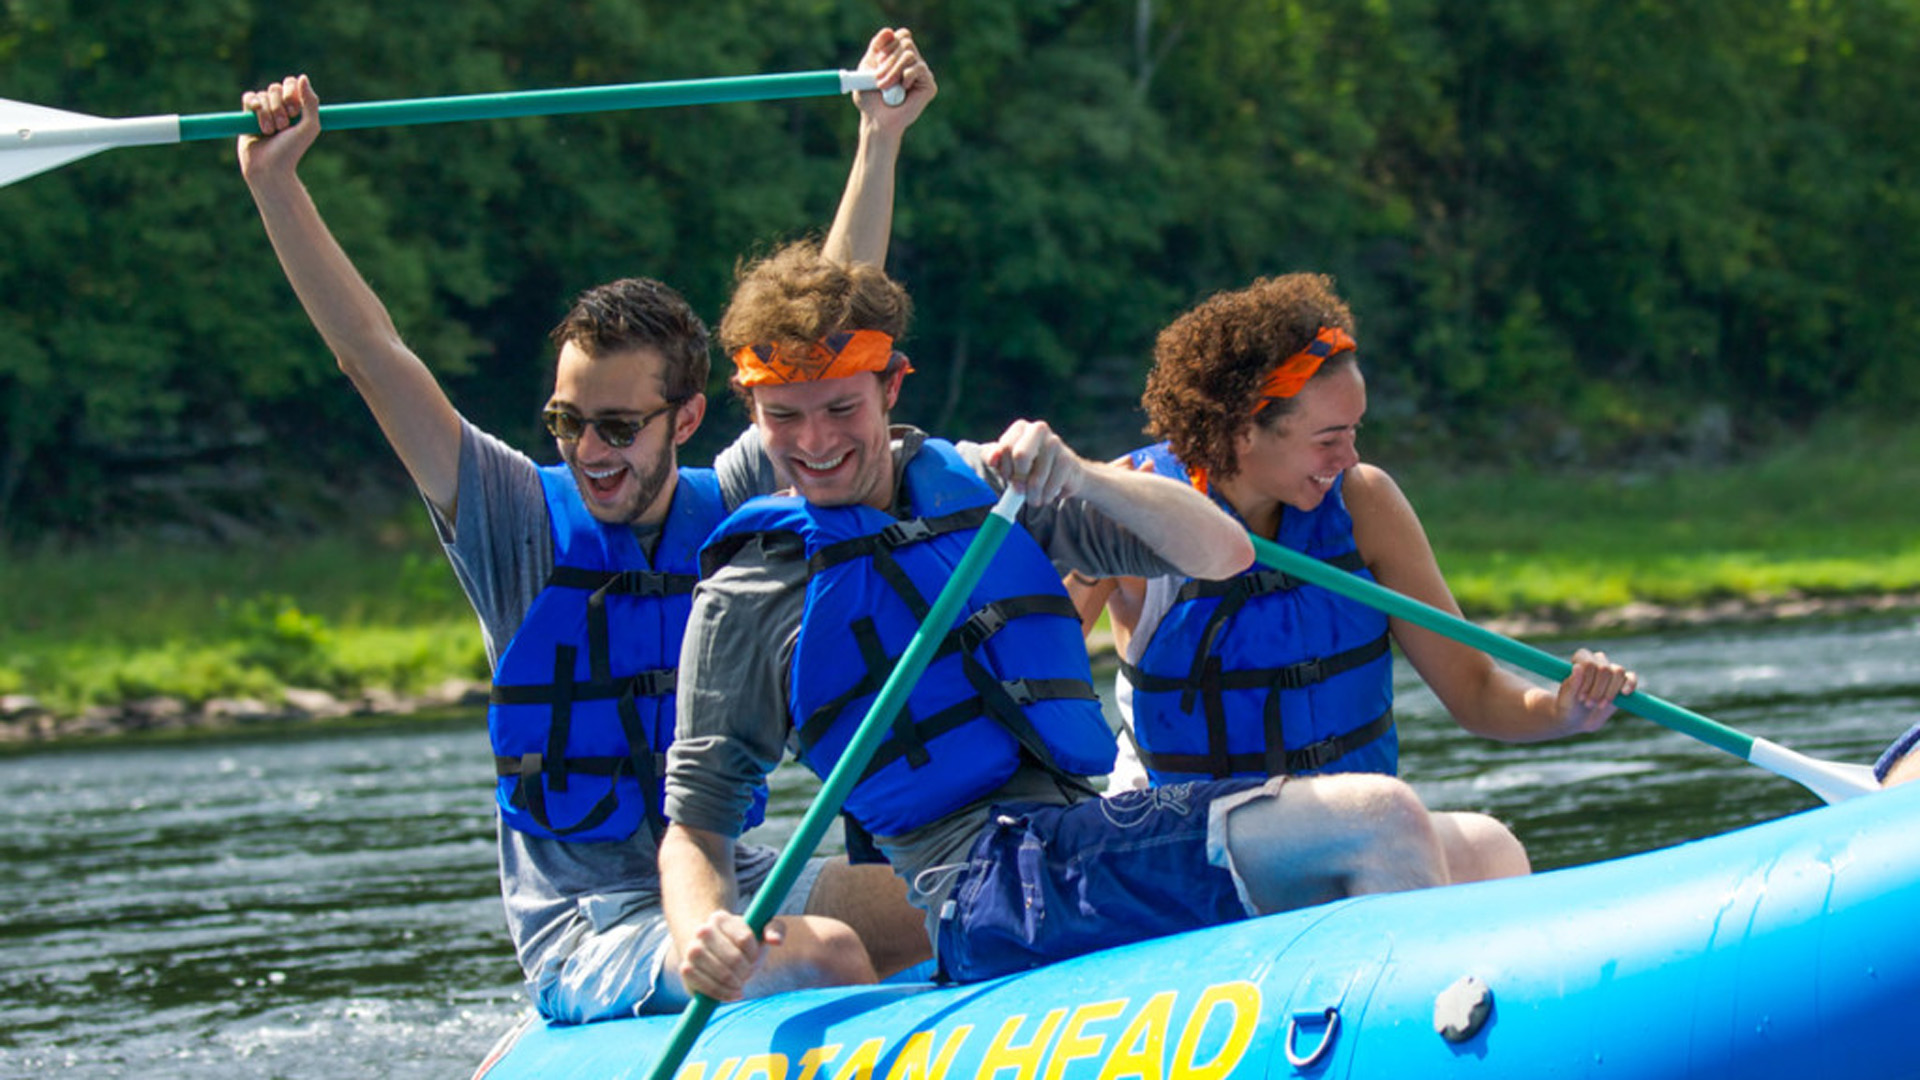 friends smiling while rafting on Delaware River Indian Head Canoeing Rafting Kayaking Tubing Delaware River